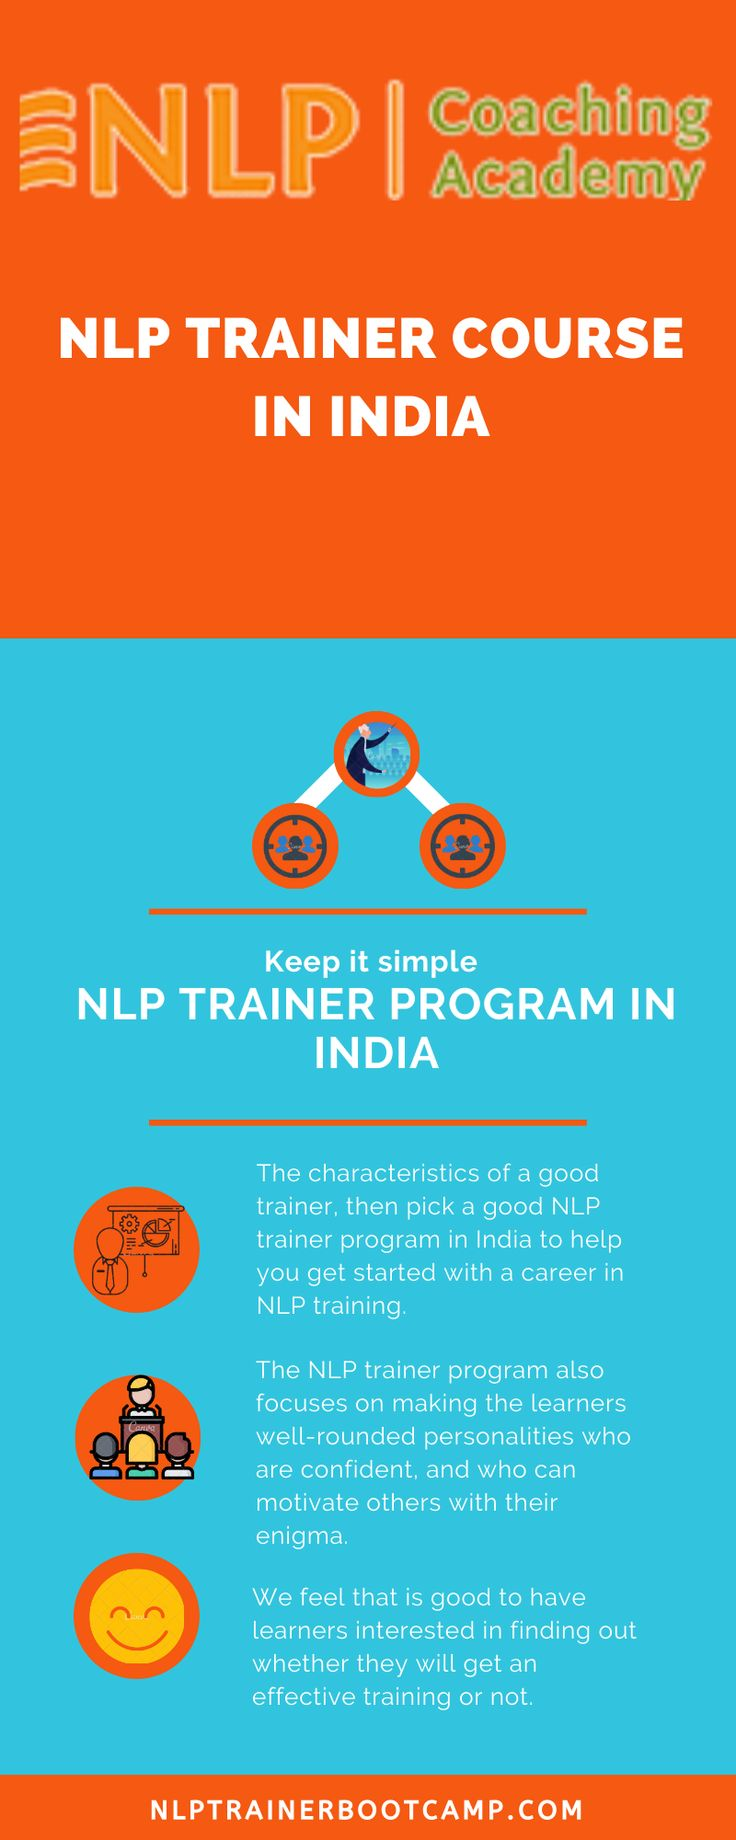 NLP Trainer Boot camp India provides a full range of ...